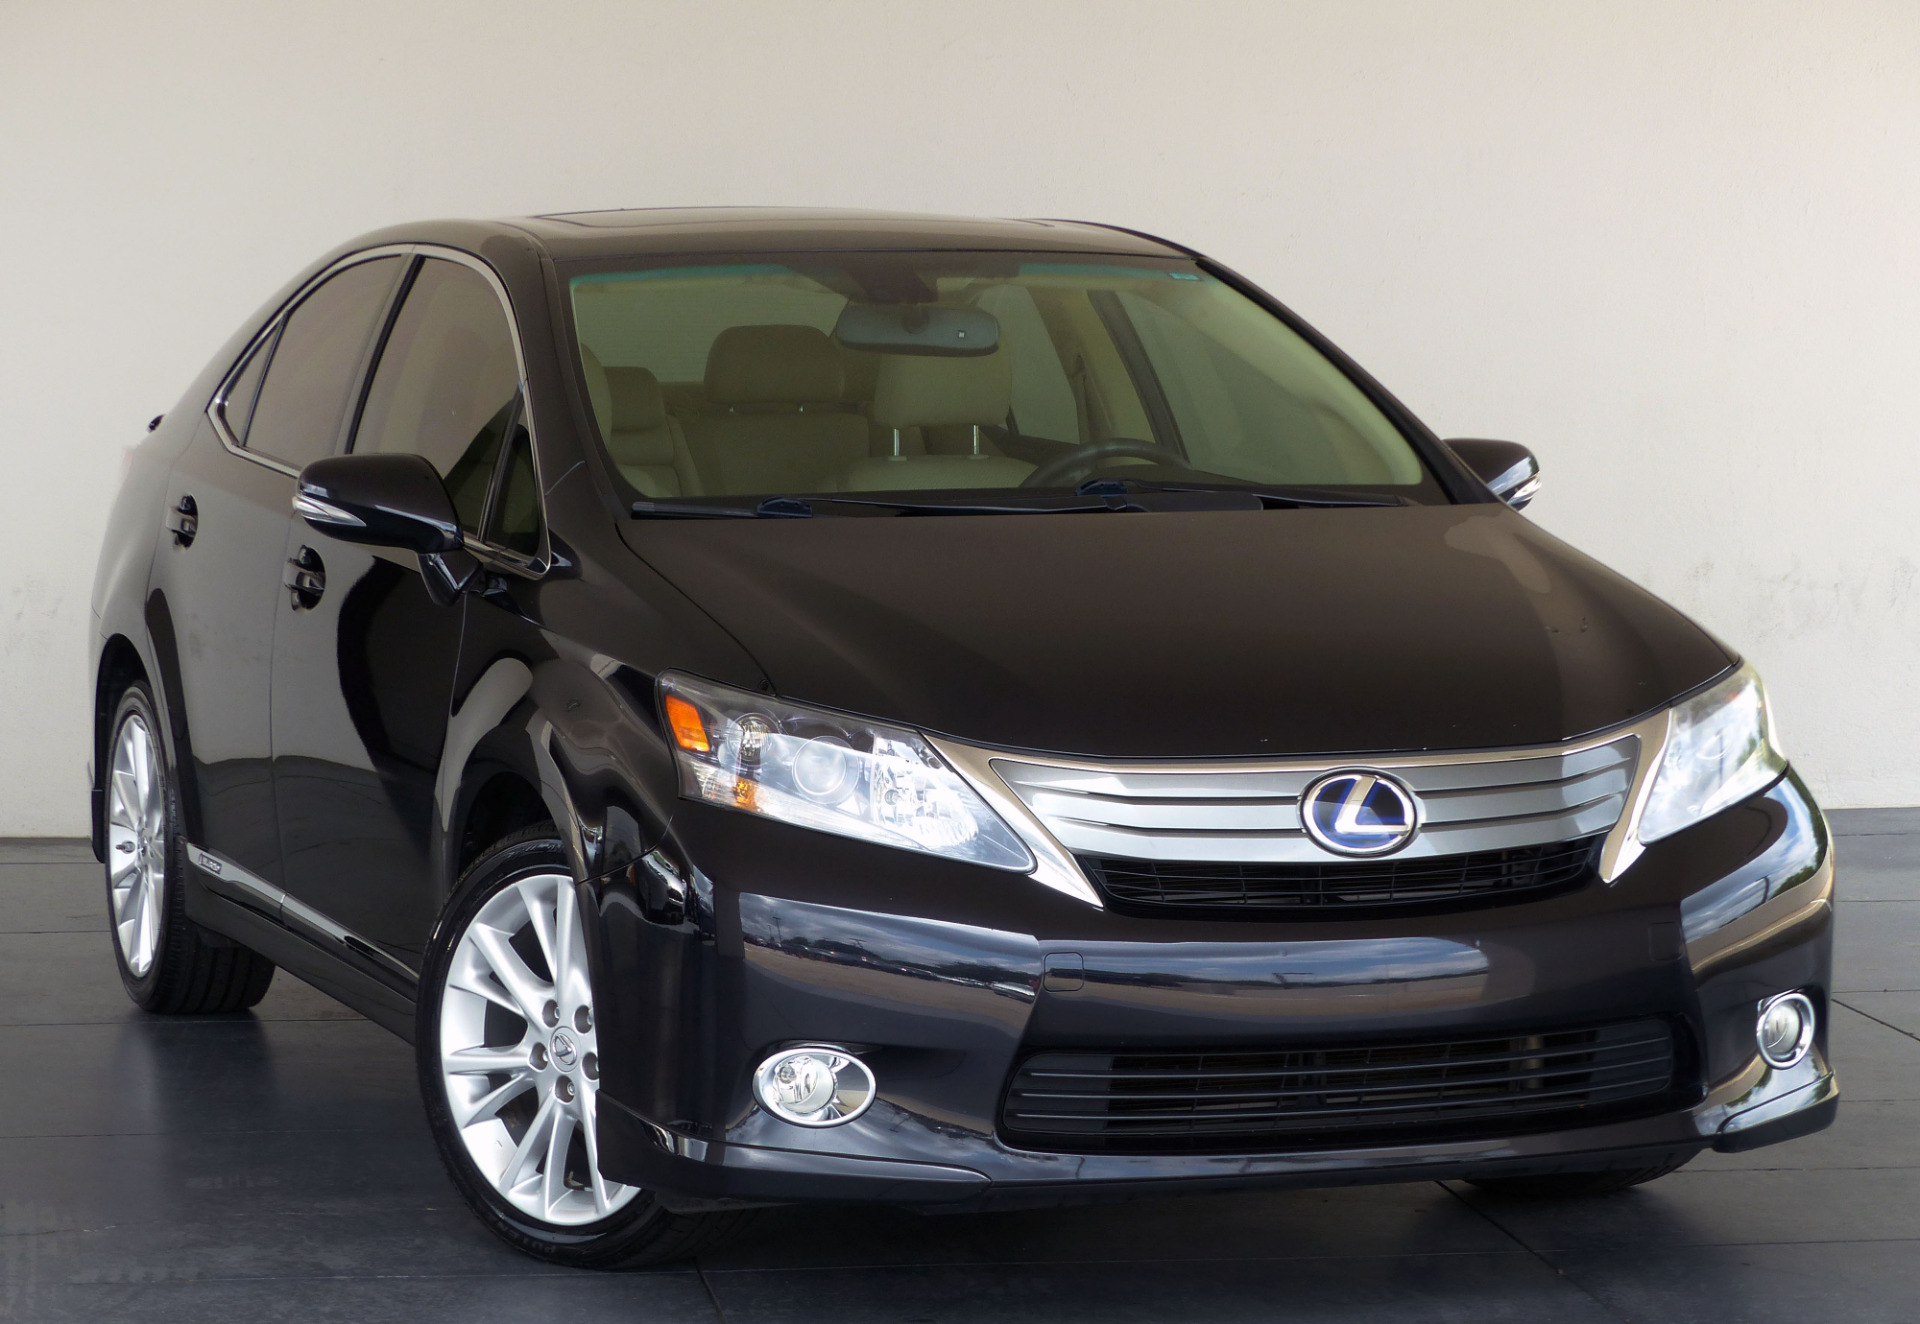 used 2010 lexus hs 250h premium marietta ga. Black Bedroom Furniture Sets. Home Design Ideas